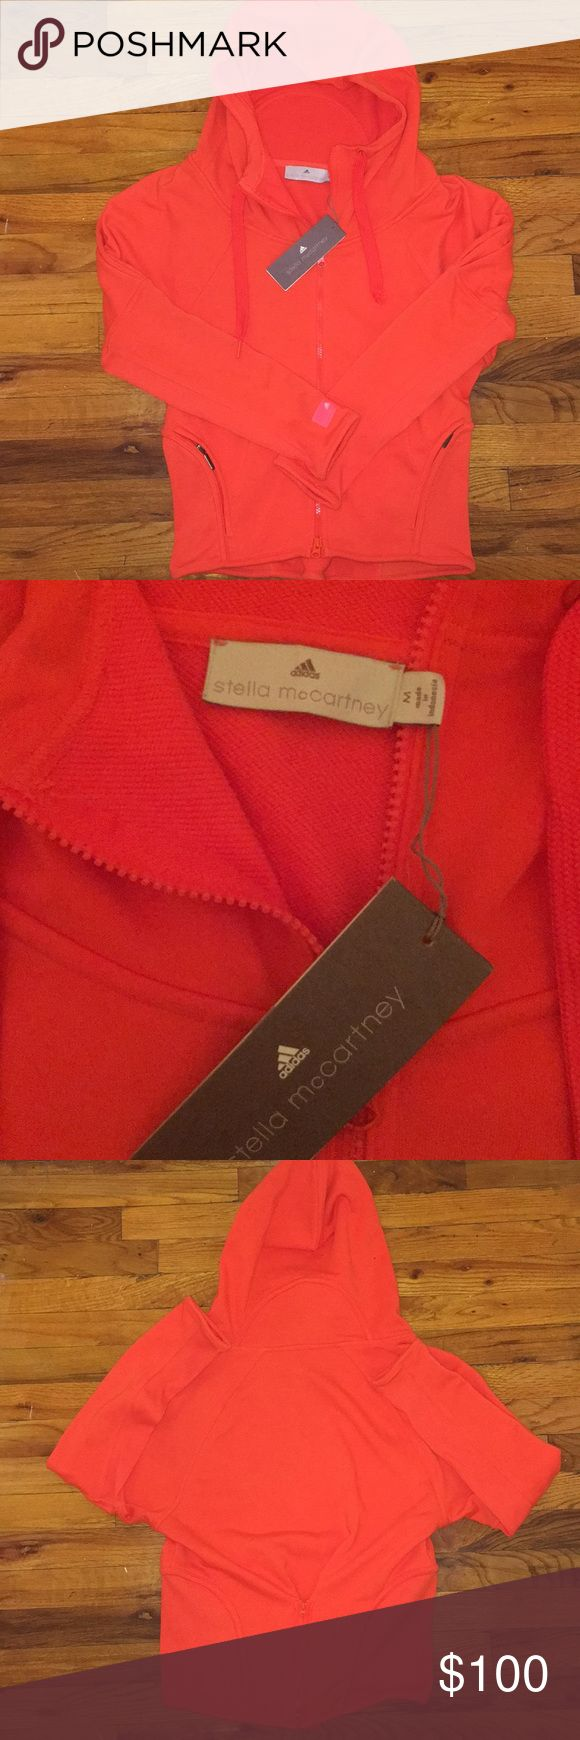 NWT Stella McCartney Adidas Orange Zip Up size M NWT Stella McCartney Adidas Orange Zip Up Hoodie, Size Medium Adidas by Stella McCartney Tops Sweatshirts & Hoodies